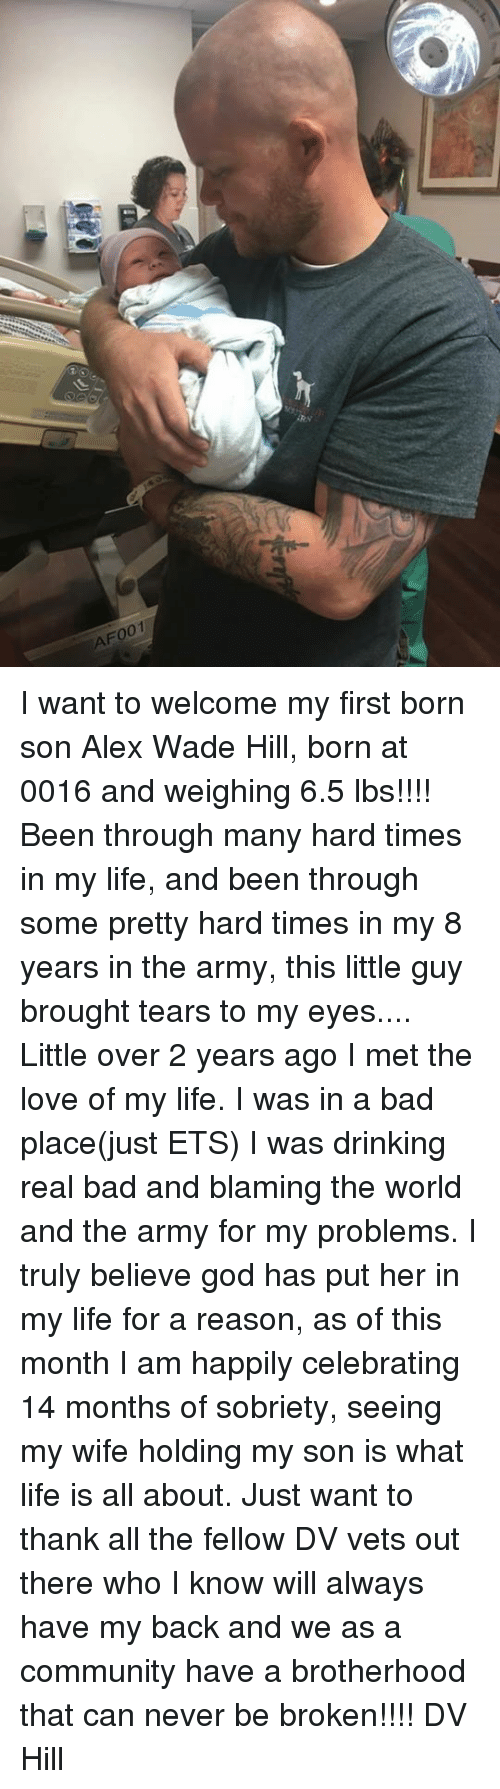 Sobriety: F001 I want to welcome my first born son Alex Wade Hill, born at 0016 and weighing 6.5 lbs!!!! Been through many hard times in my life, and been through some pretty hard times in my 8 years in the army, this little guy brought tears to my eyes....  Little over 2 years ago I met the love of my life. I was in a bad place(just ETS) I was drinking real bad and blaming the world and the army for my problems. I truly believe god has put her in my life for a reason, as of this month I am happily celebrating 14 months of sobriety, seeing my wife holding my son is what life is all about.   Just want to thank all the fellow DV vets out there who I know will always have my back and we as a community have a  brotherhood  that can never be broken!!!!  DV  Hill